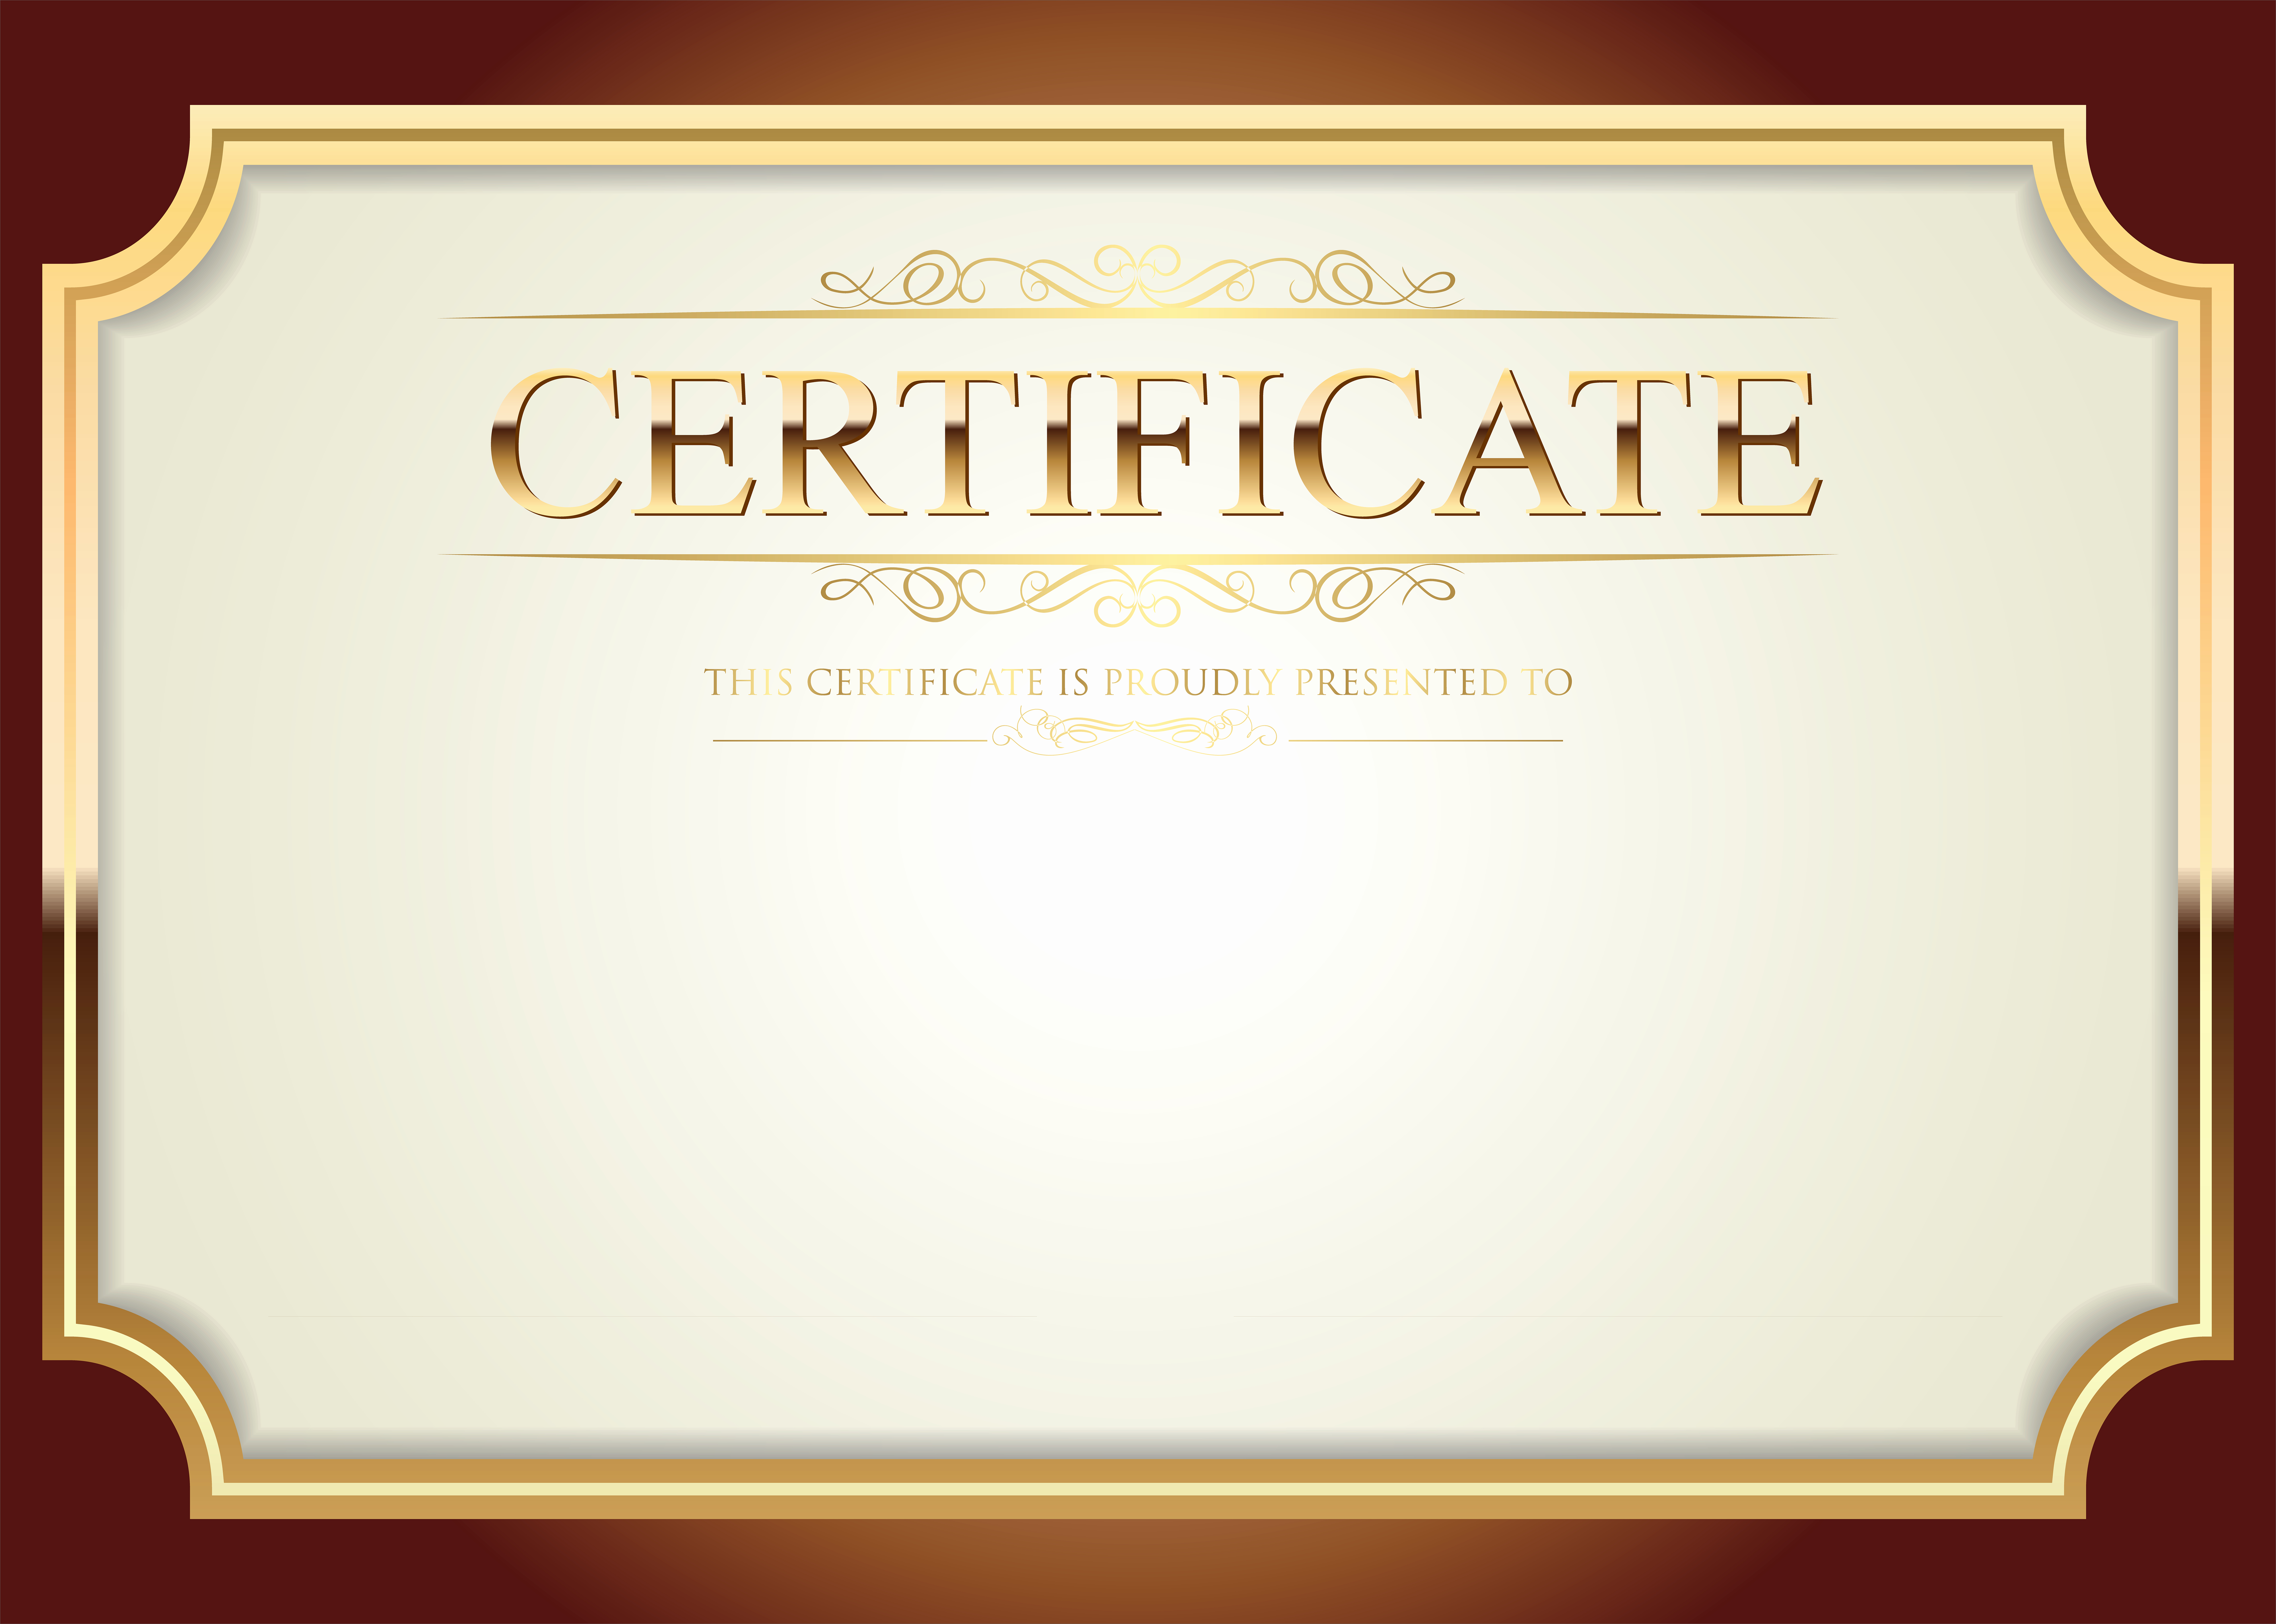 Certificate Of Quality Template Elegant Pin by Jandy Tubo On Graphic Design